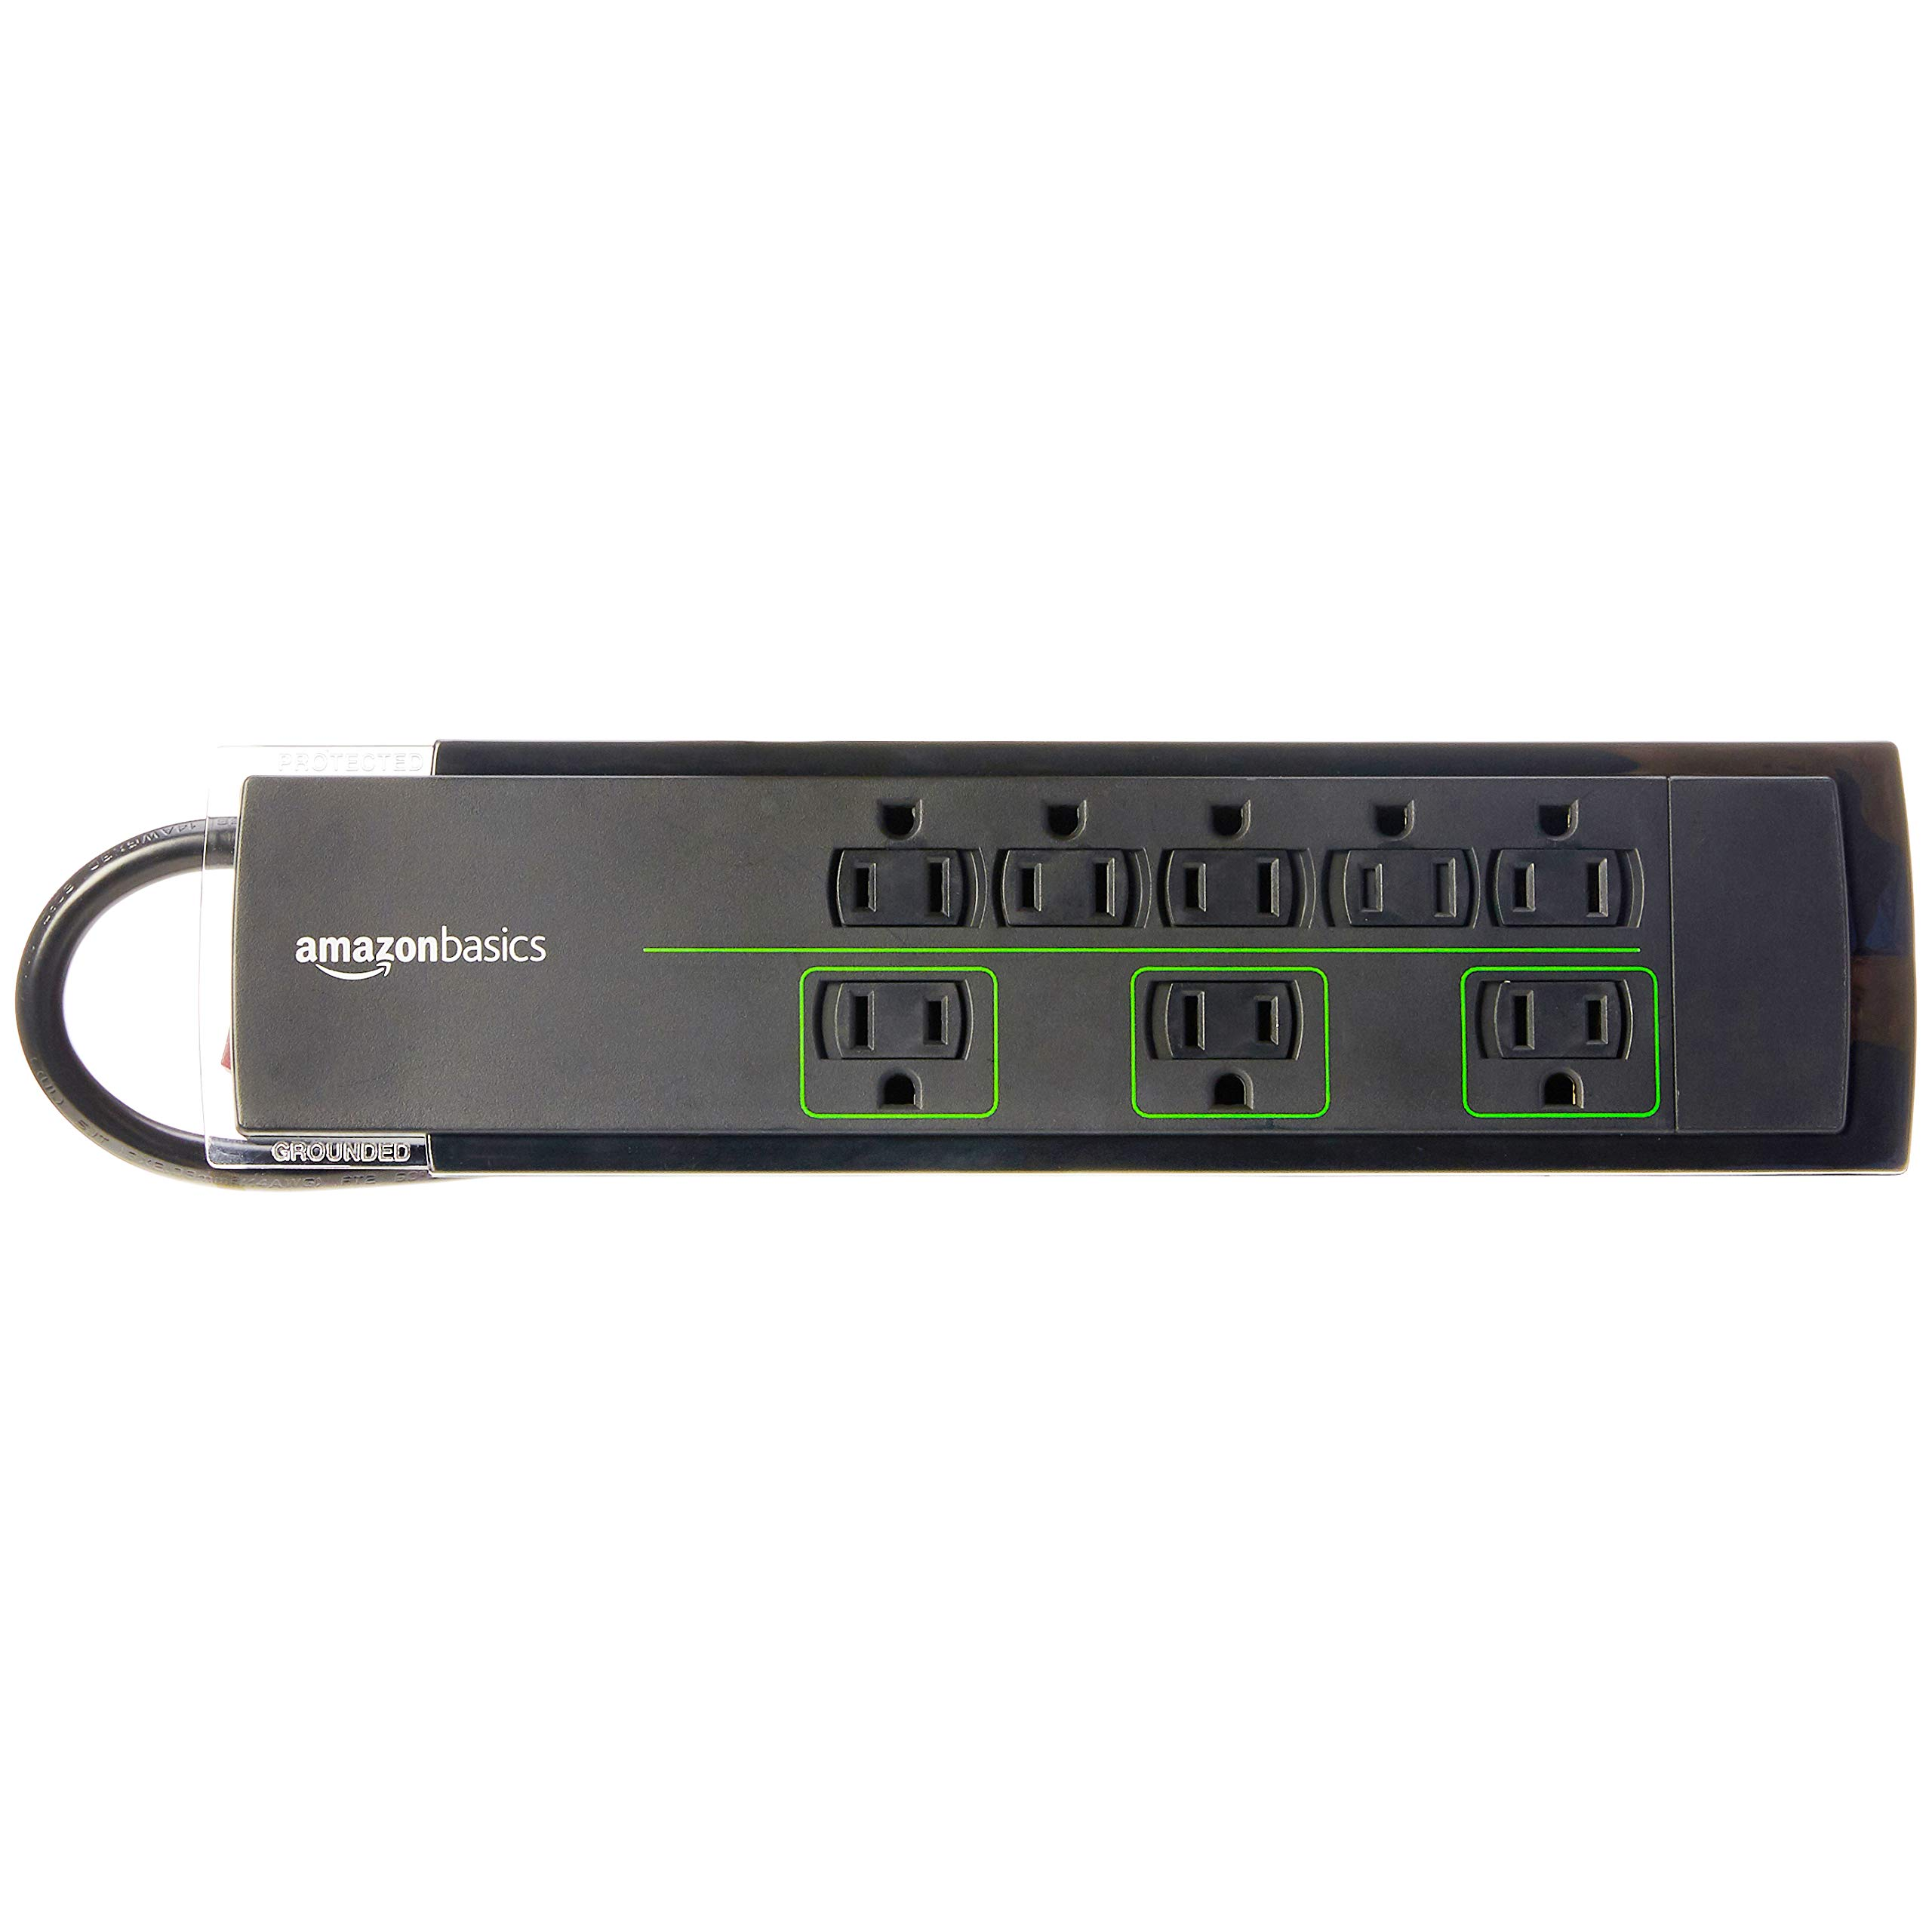 AmazonBasics 8-Outlet Power Strip Surge Protector | 4,500 Joule, 12-Foot Cord by AmazonBasics